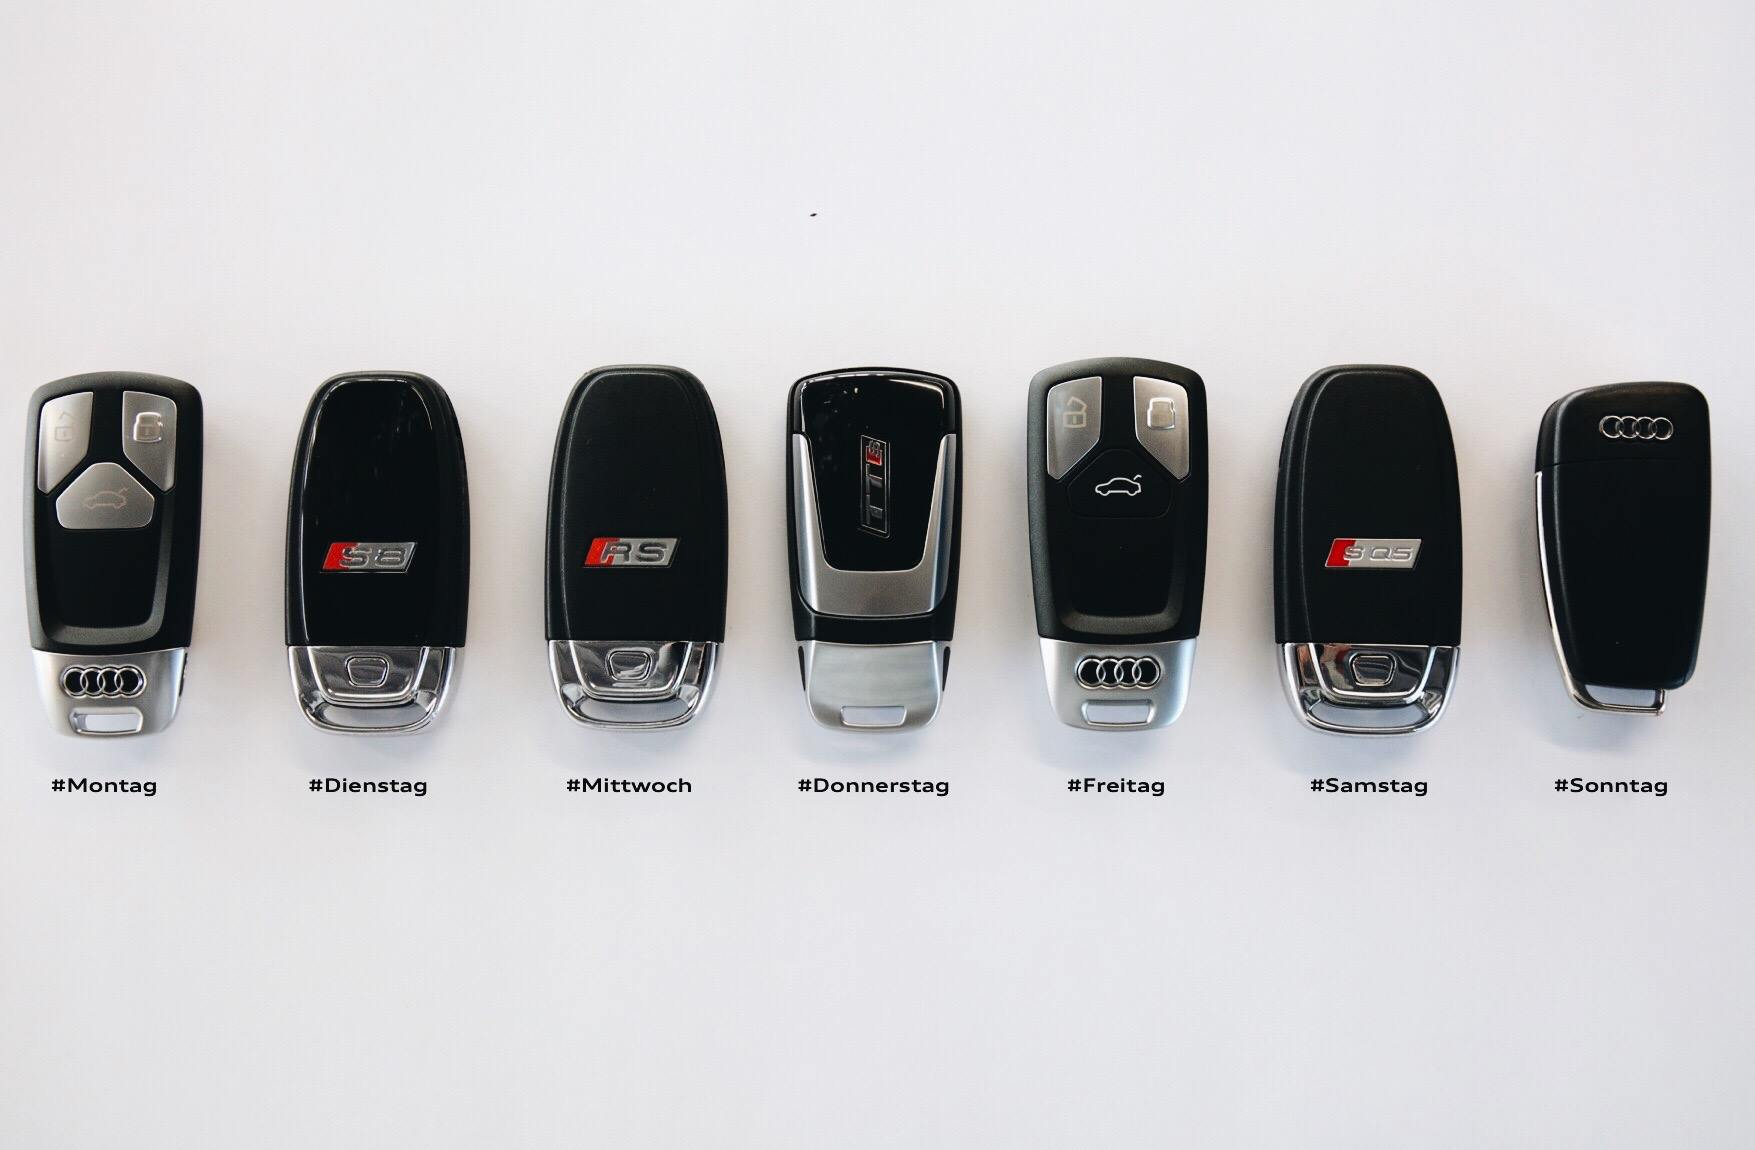 Seven Audi Car Keys One For Each Day Of The Week